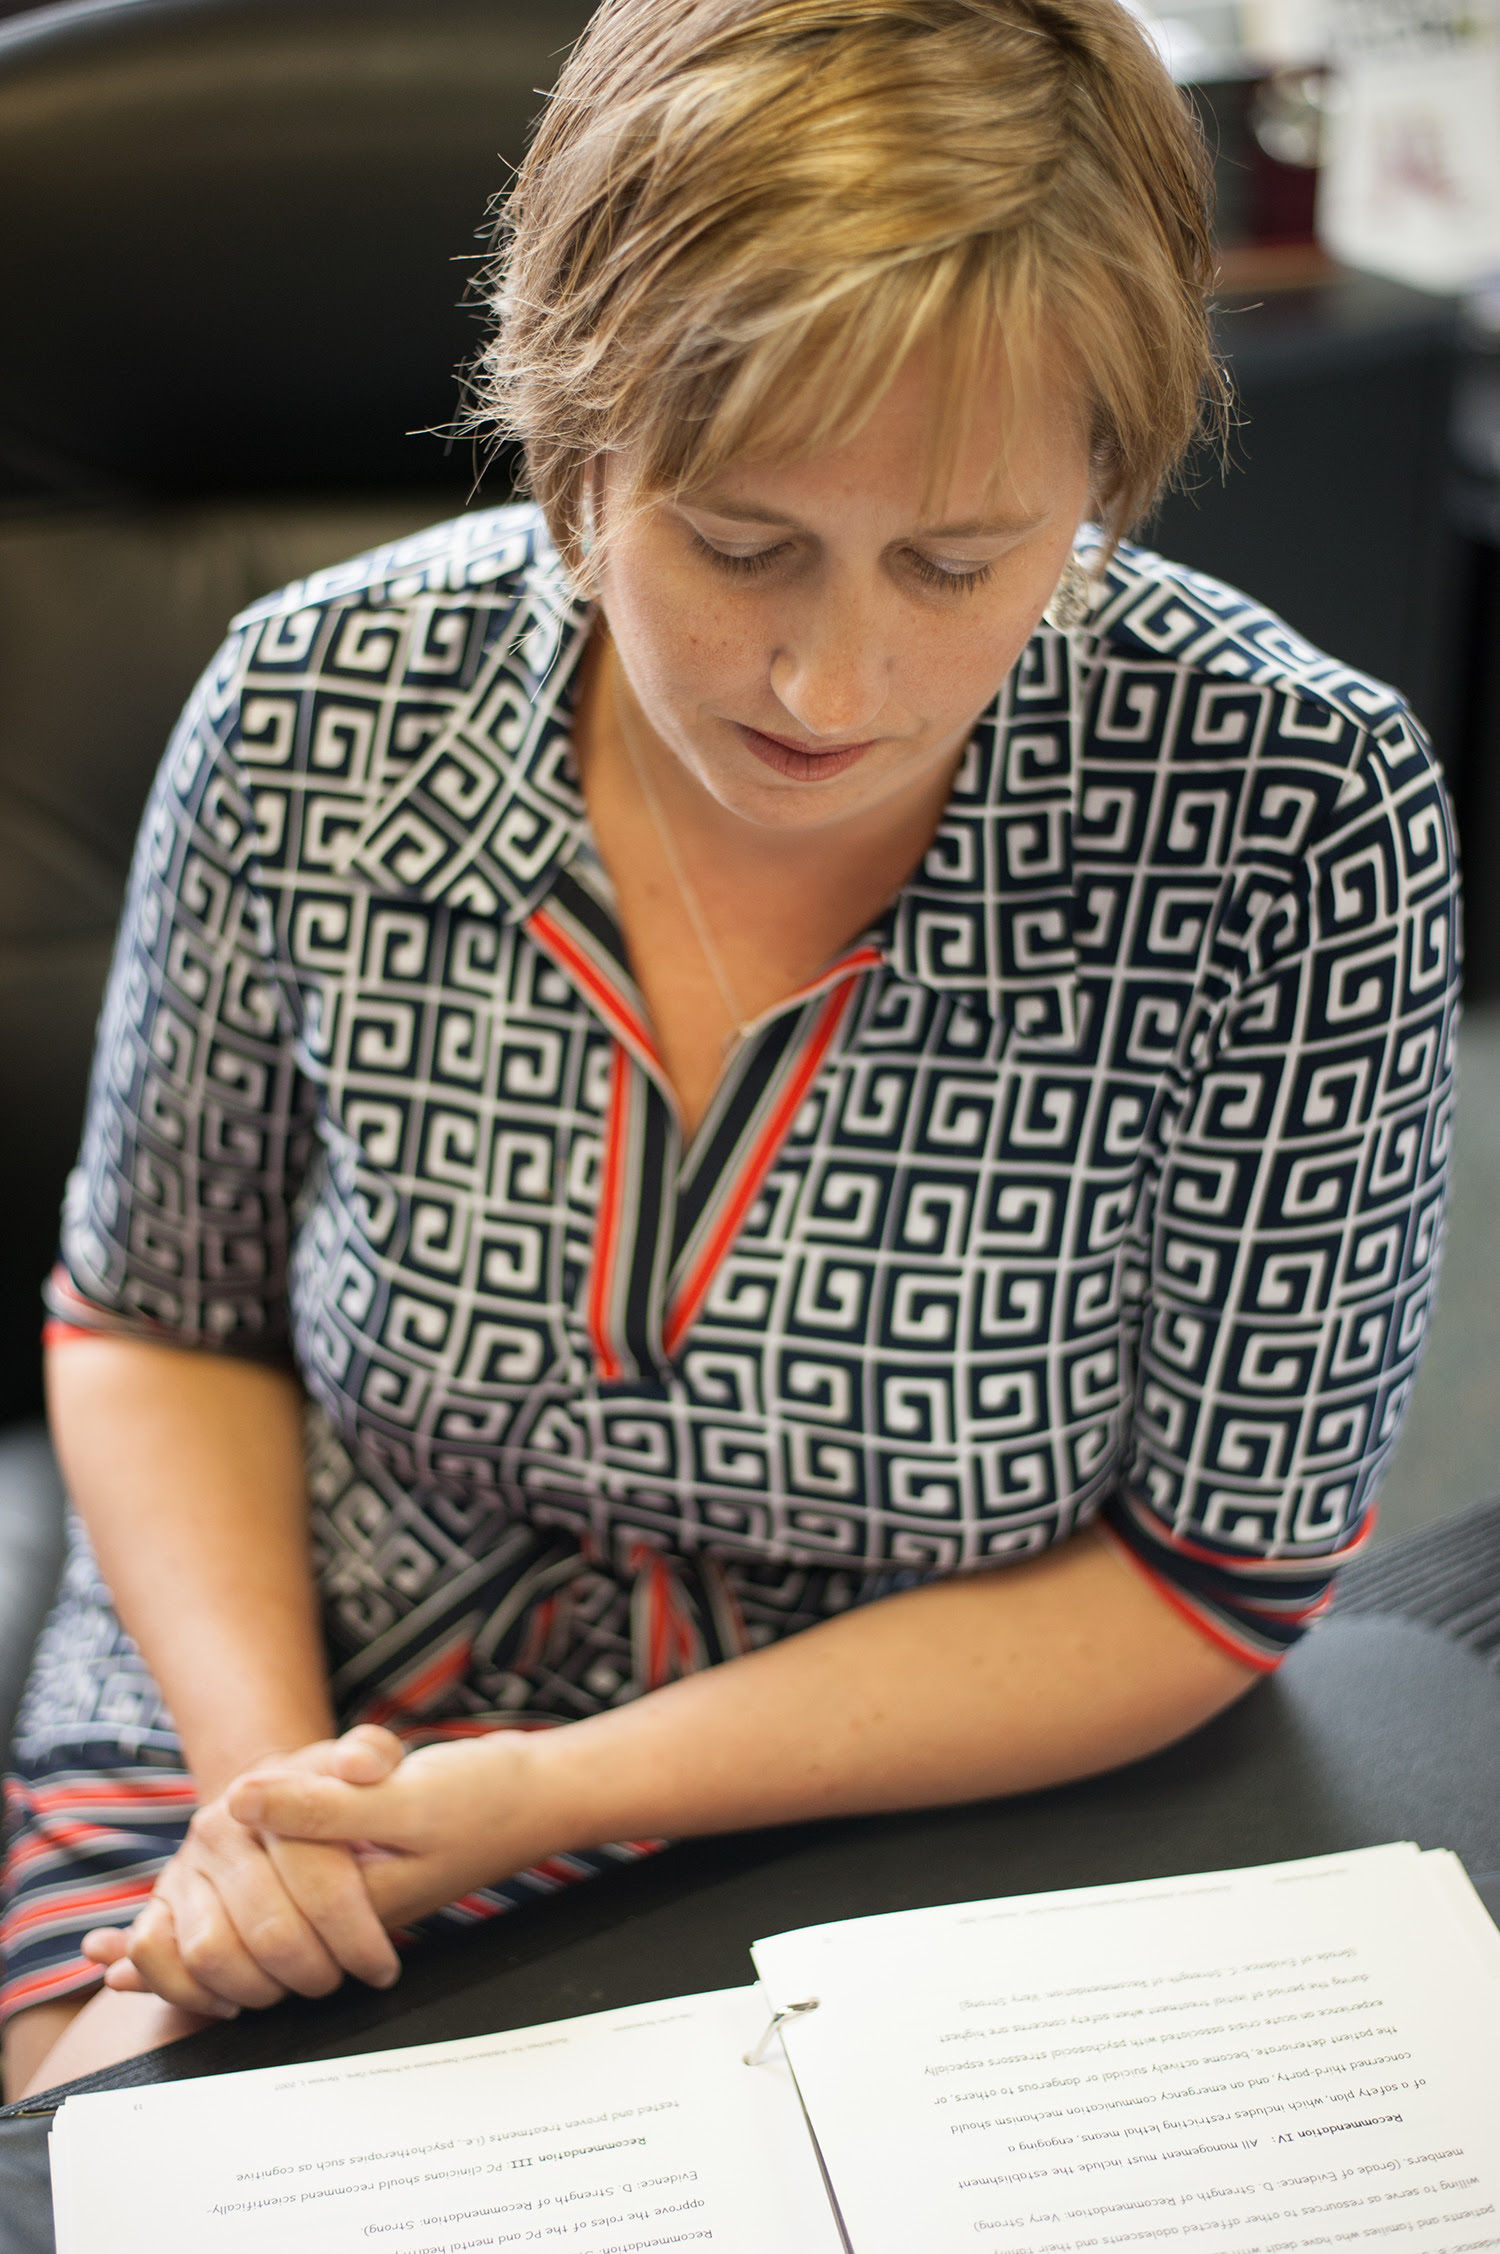 When Your Child Struggles With Mental Illness You Have To Wait Weeks For Mental Health Services In Pennsylvania Here S Why Publicsource News For A Better Pittsburgh